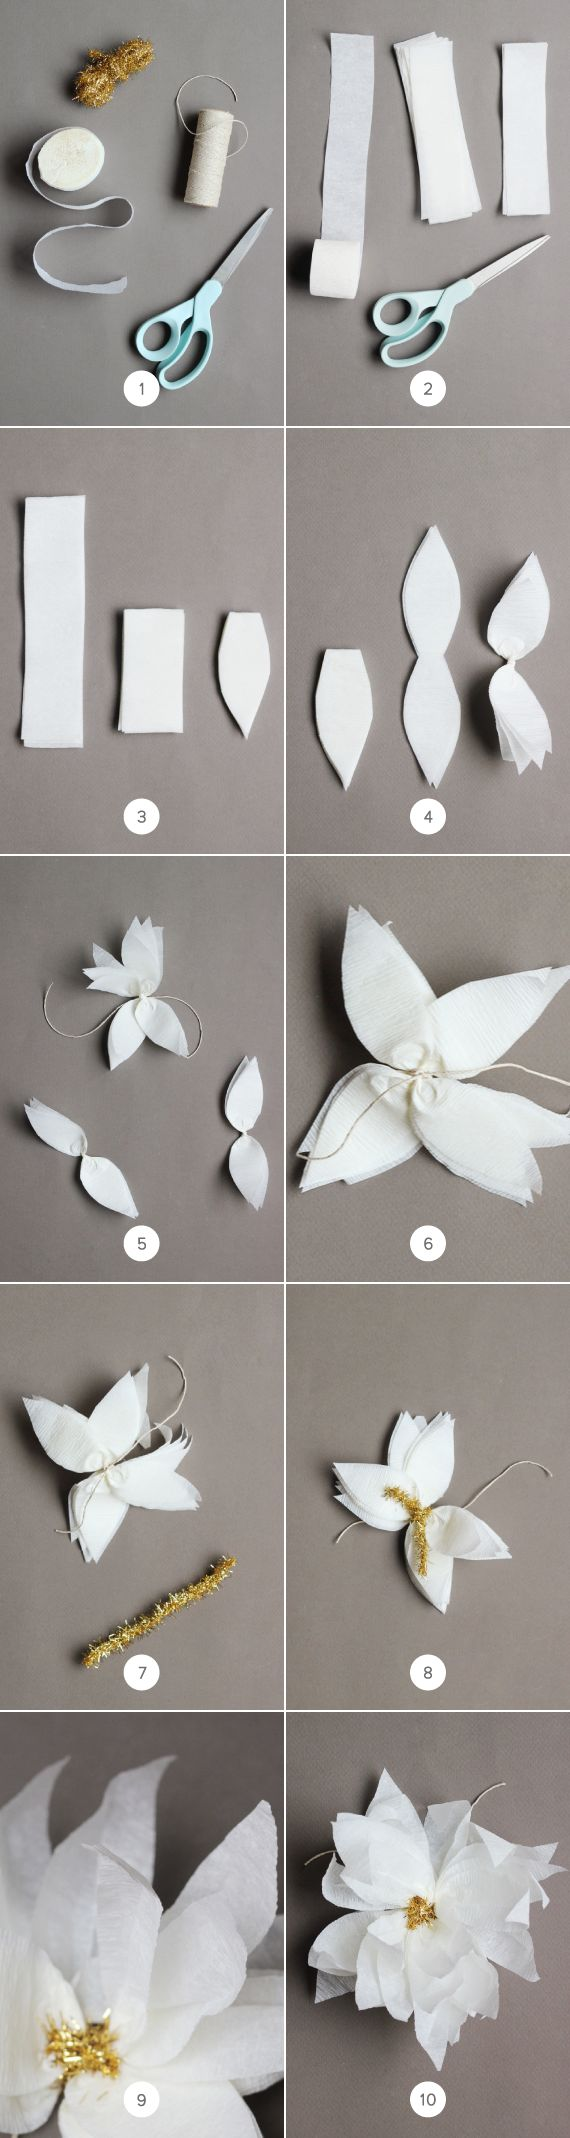 DIY Crepe Paper Poinsettia Gift Toppers.